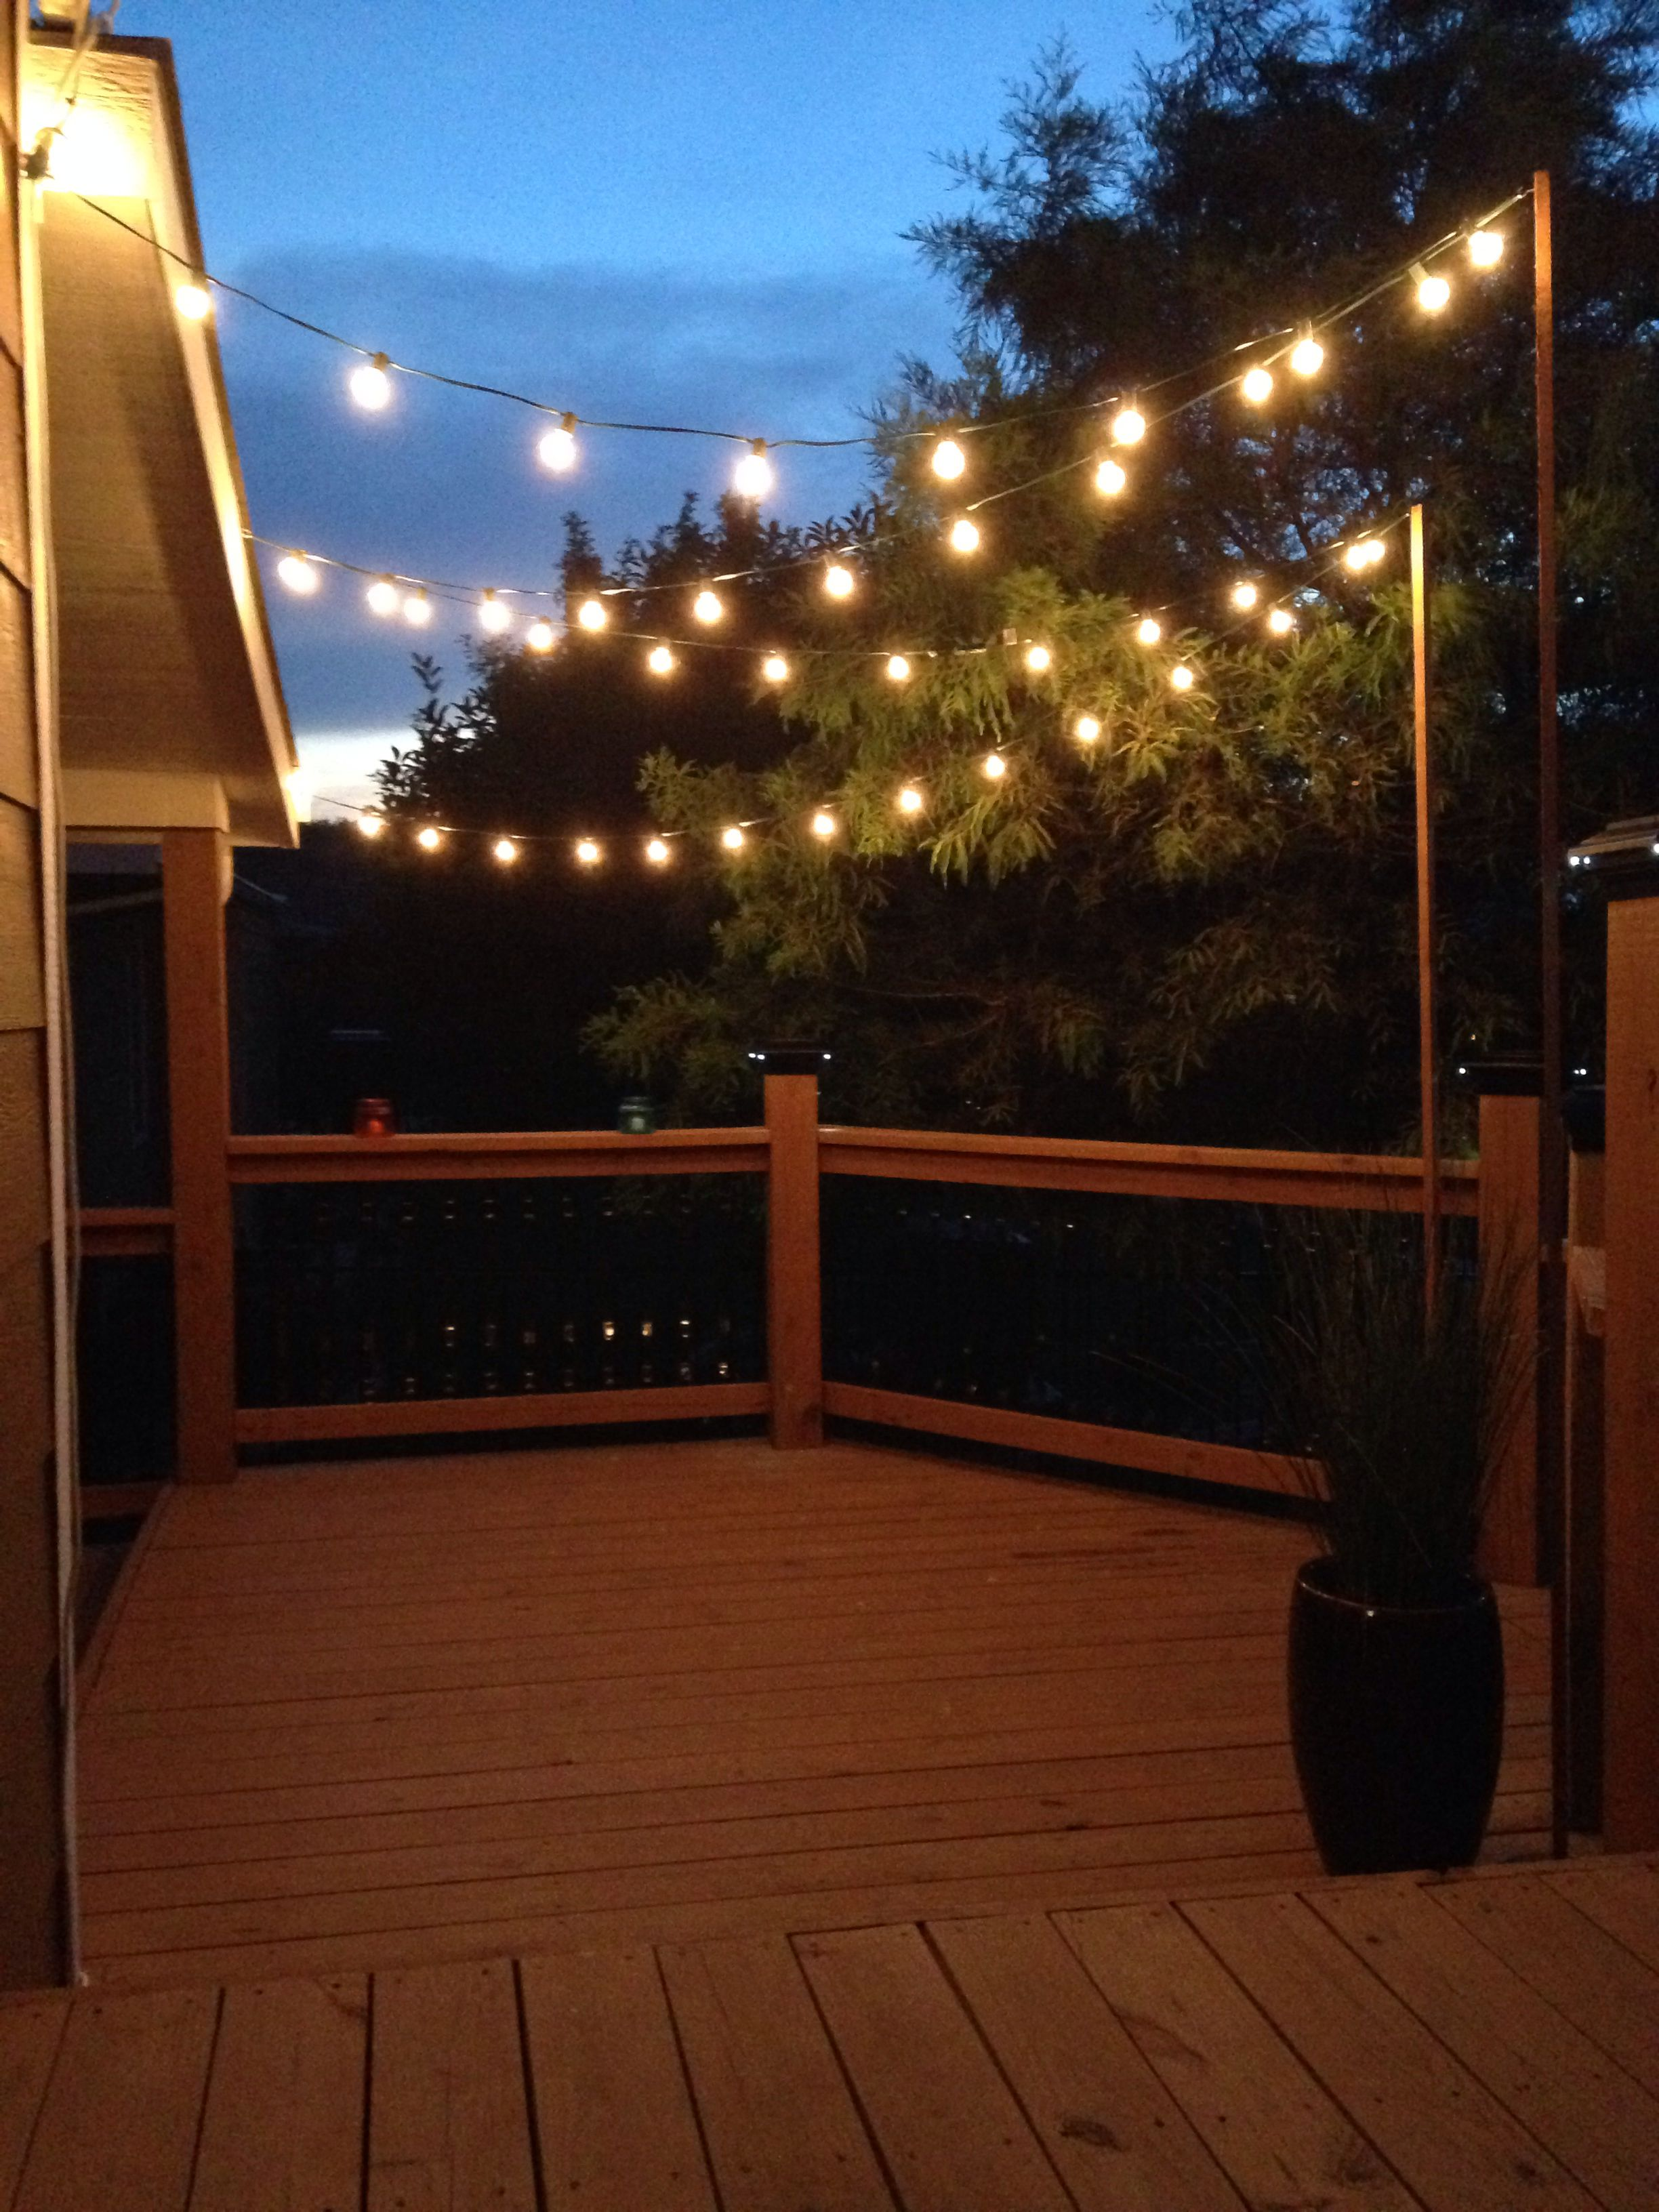 outdoor patio lighting ideas pictures on pin on outdoor relaxing entertaining pin on outdoor relaxing entertaining